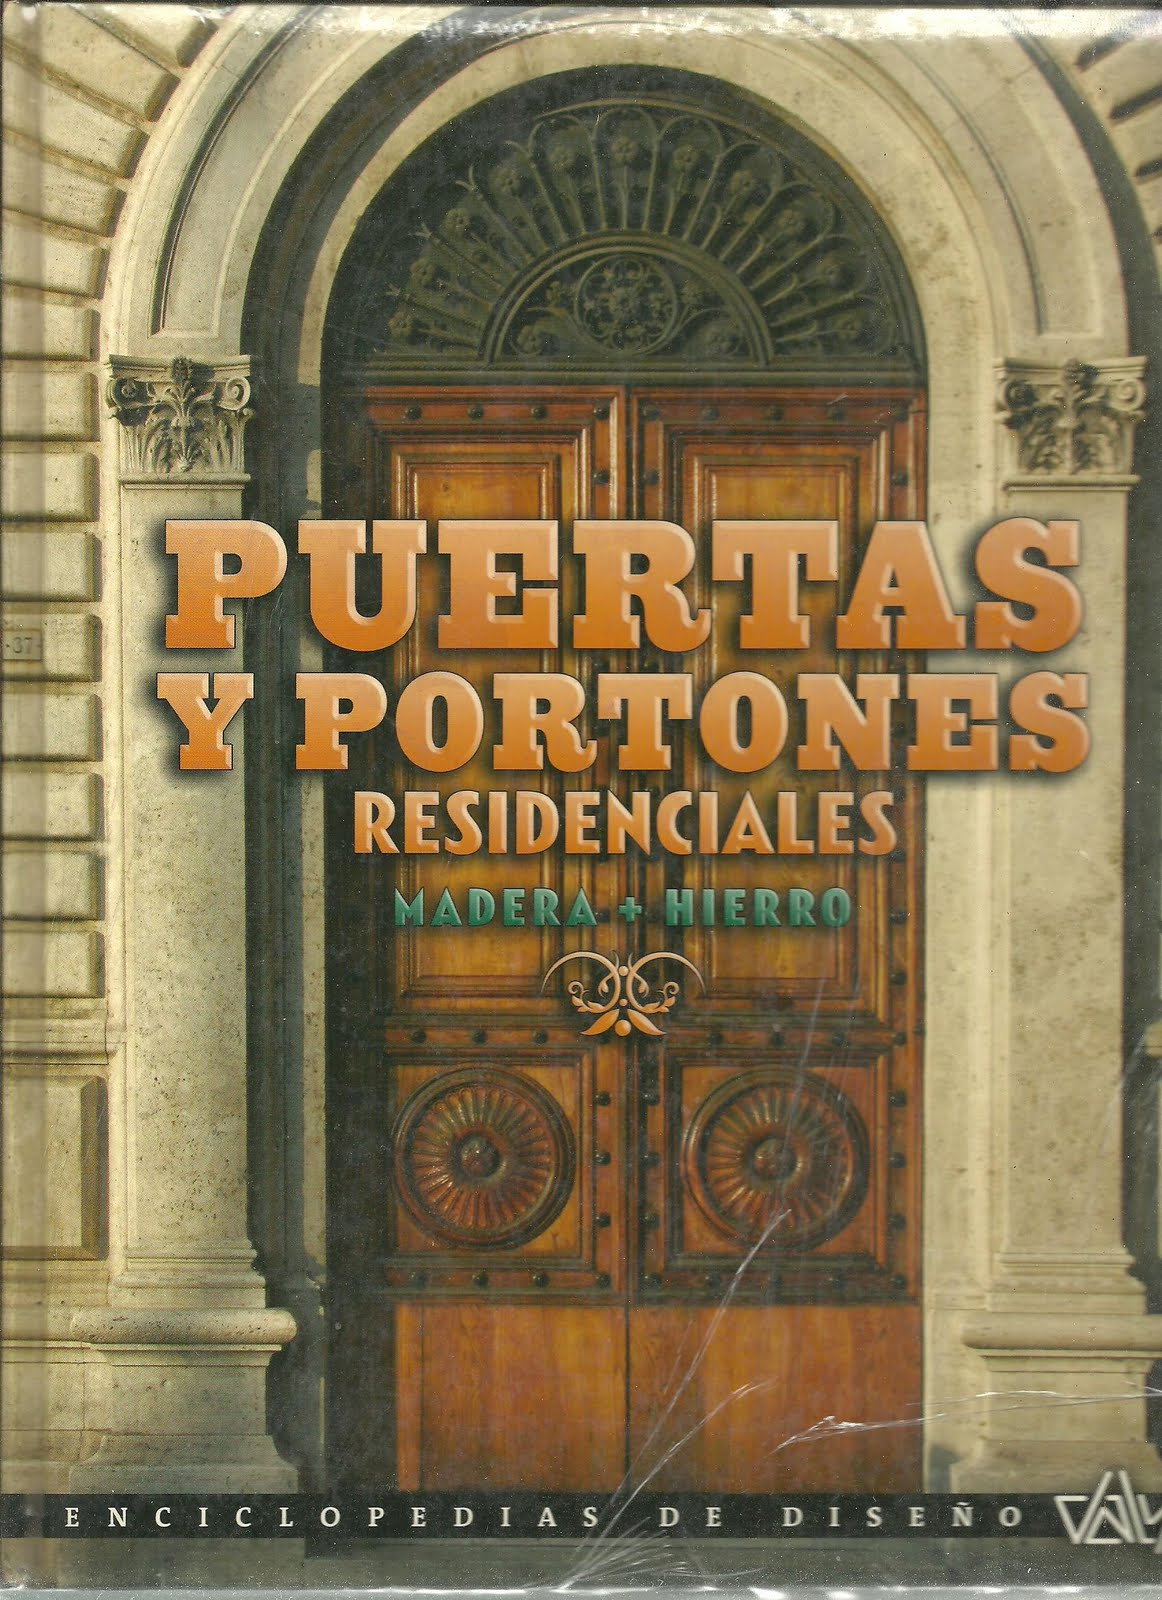 Pin portones rusticos genuardis portal on pinterest for Portones de hierro y madera modernos